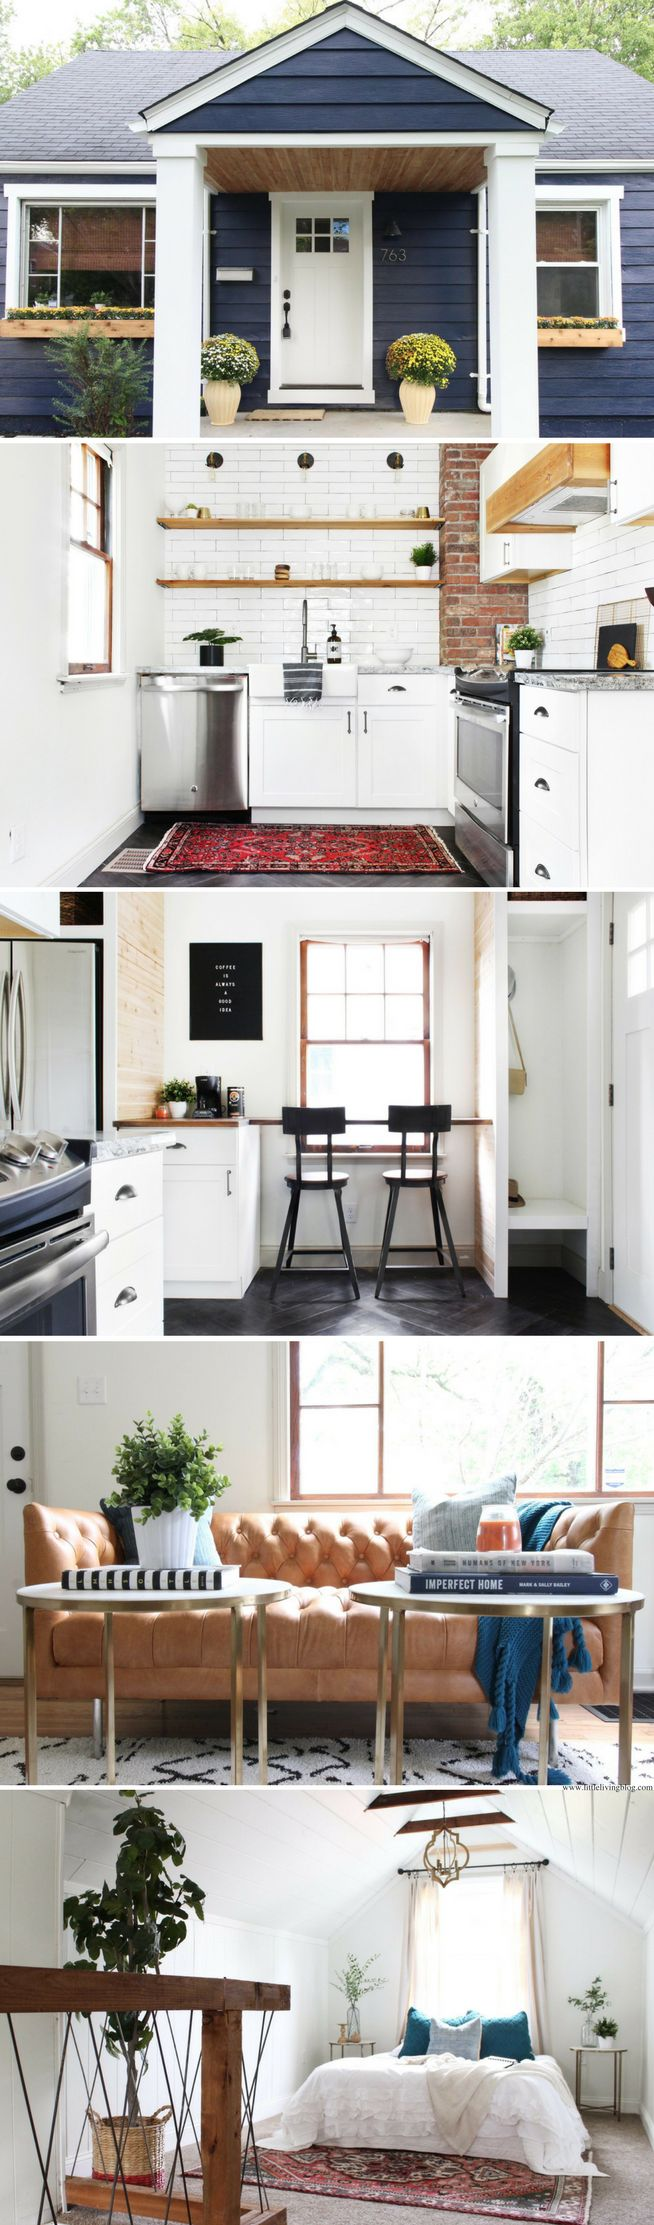 Best 25+ Small house design ideas on Pinterest | Small house ...